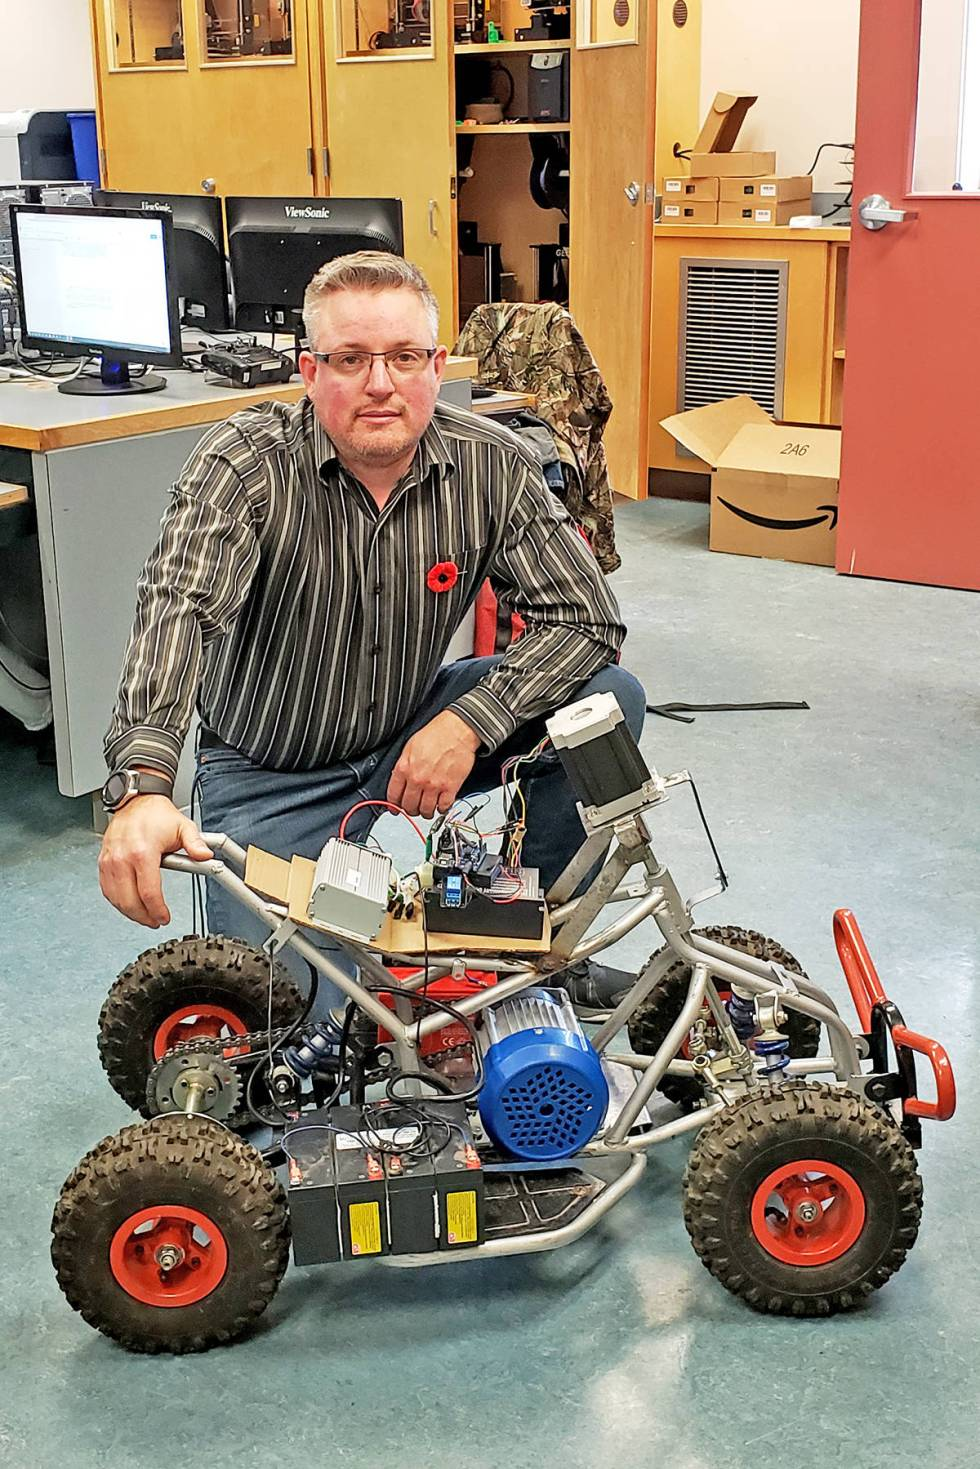 Lake City Secondary School robotics teacher Nick MacDonald poses with the rover his students are creating for their Capstone Project. (Photo submitted)